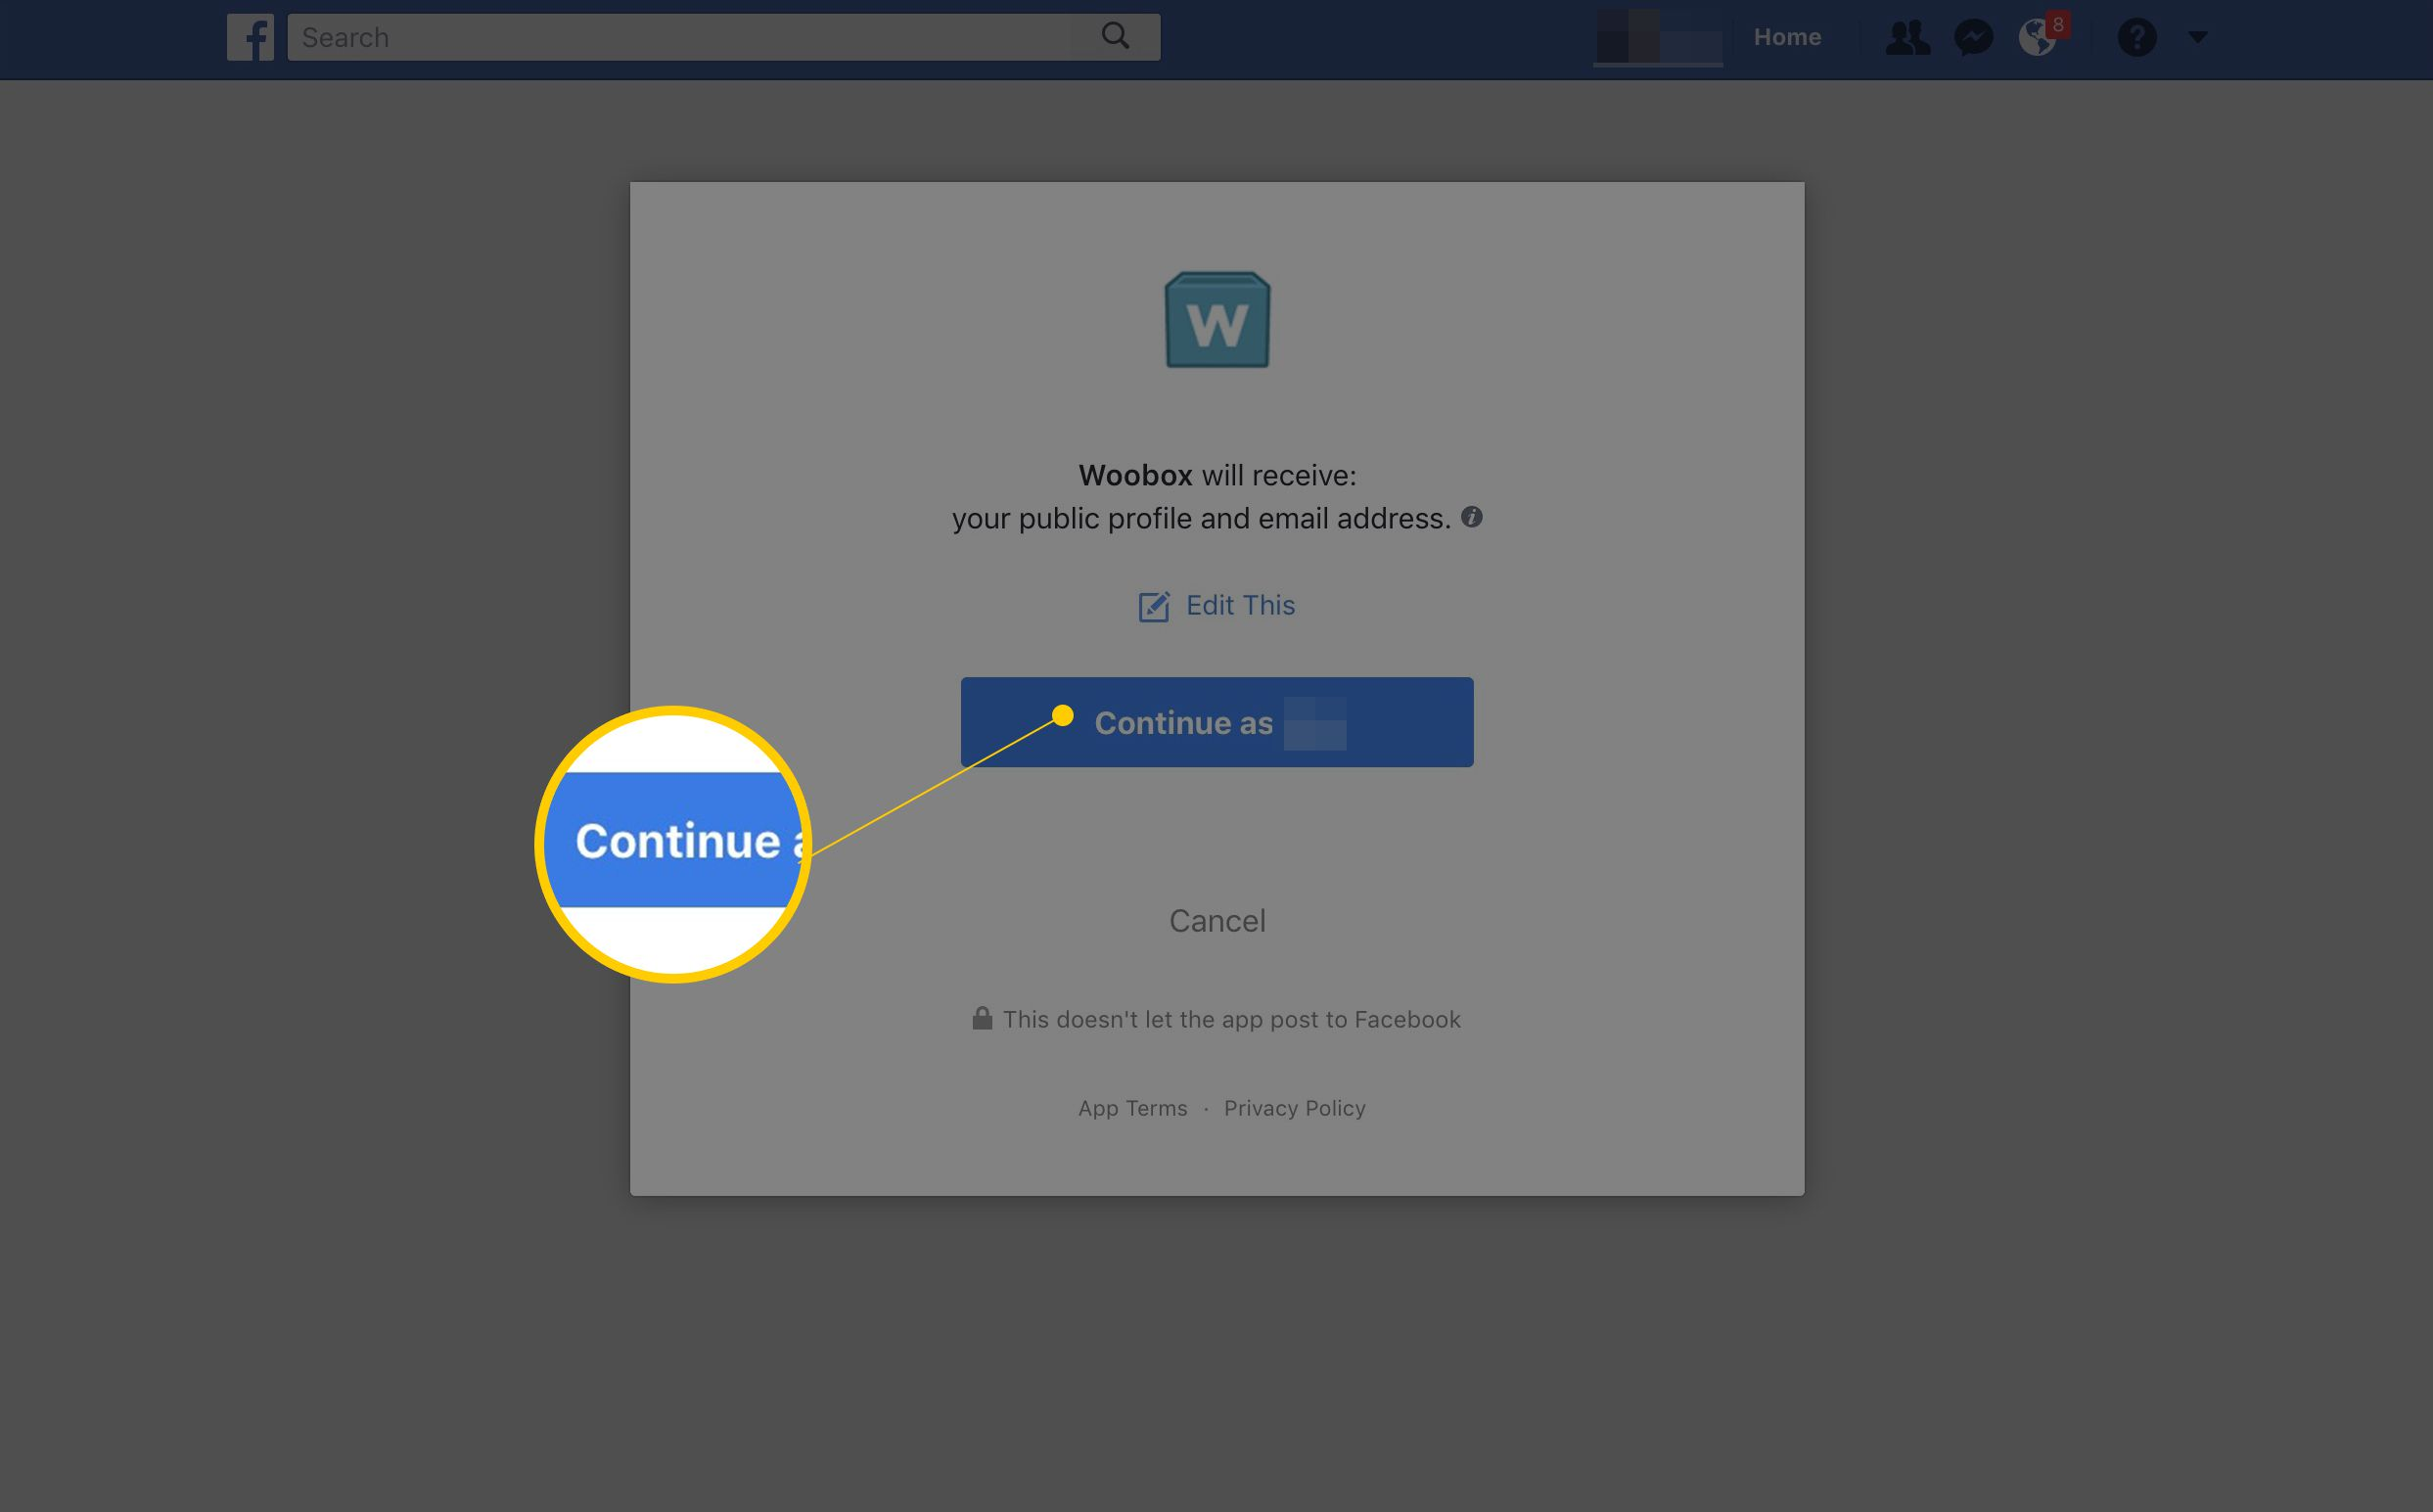 Continue button for Woobox permissions